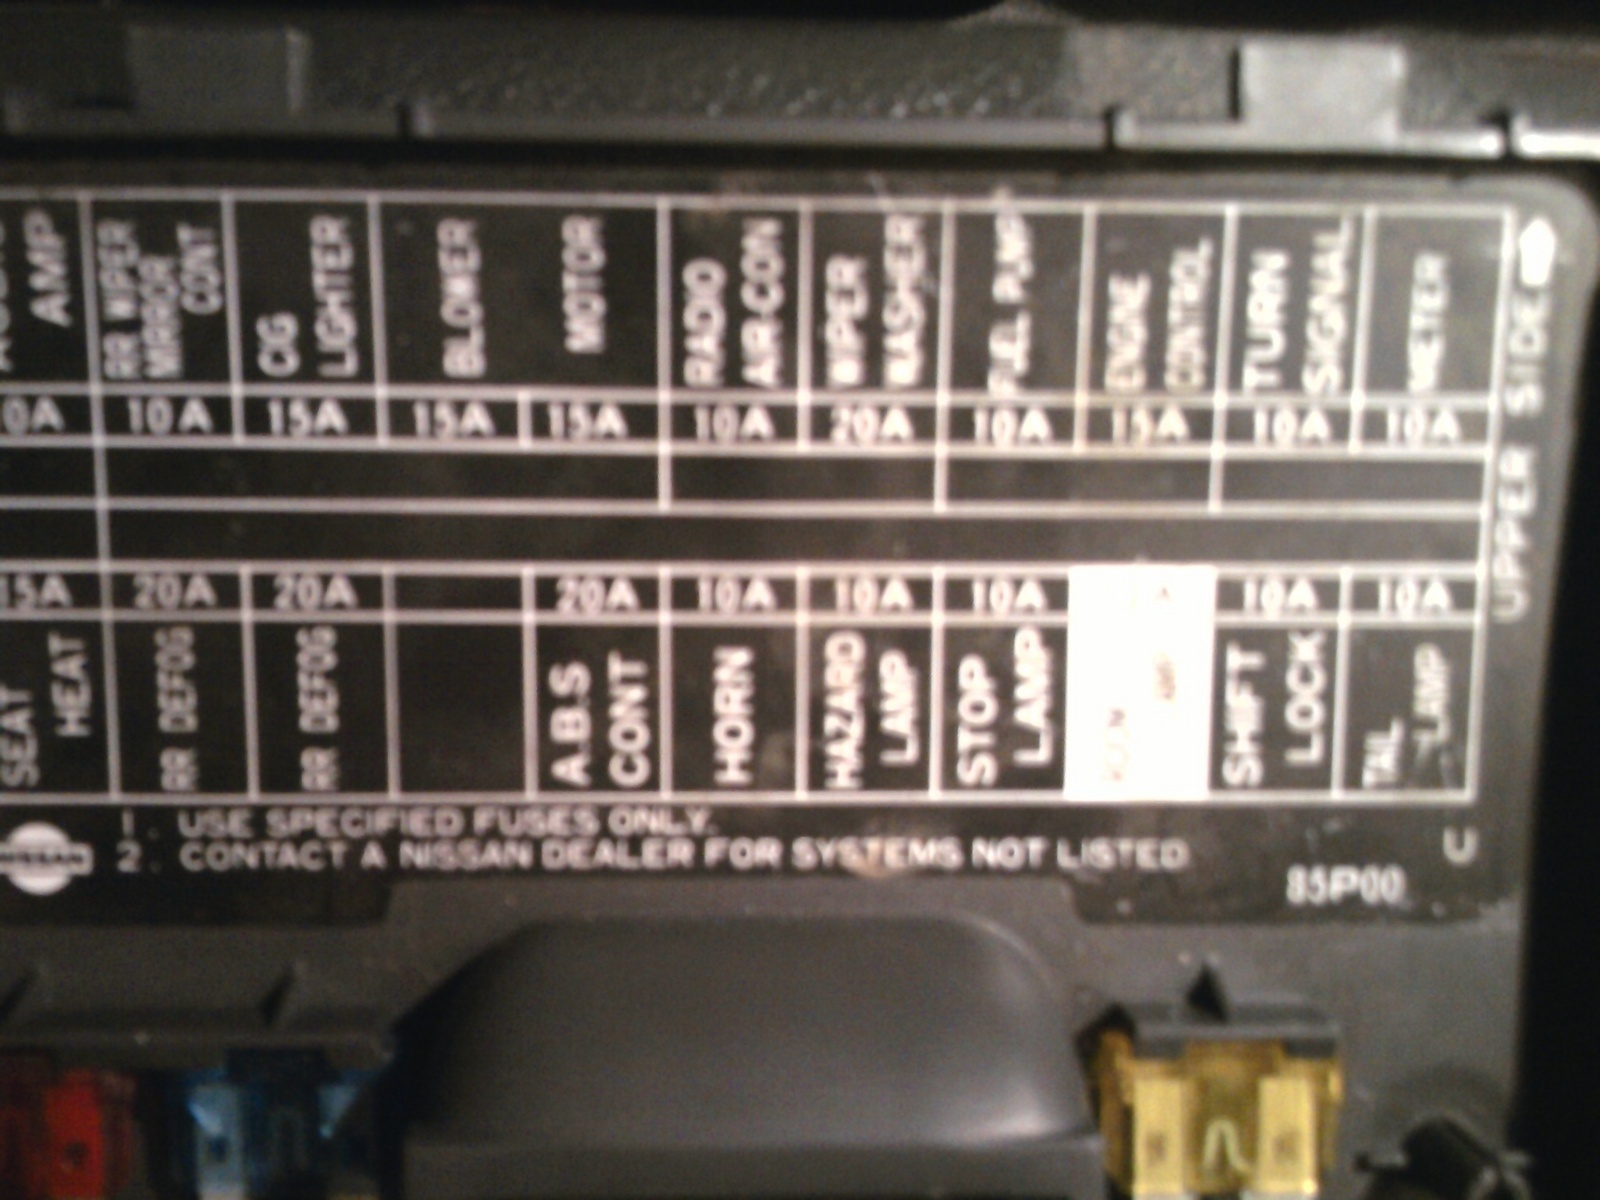 hight resolution of 1987 d21 fuse box wiring schematic diagram rh macro program com 1997 nissan pathfinder fuse box